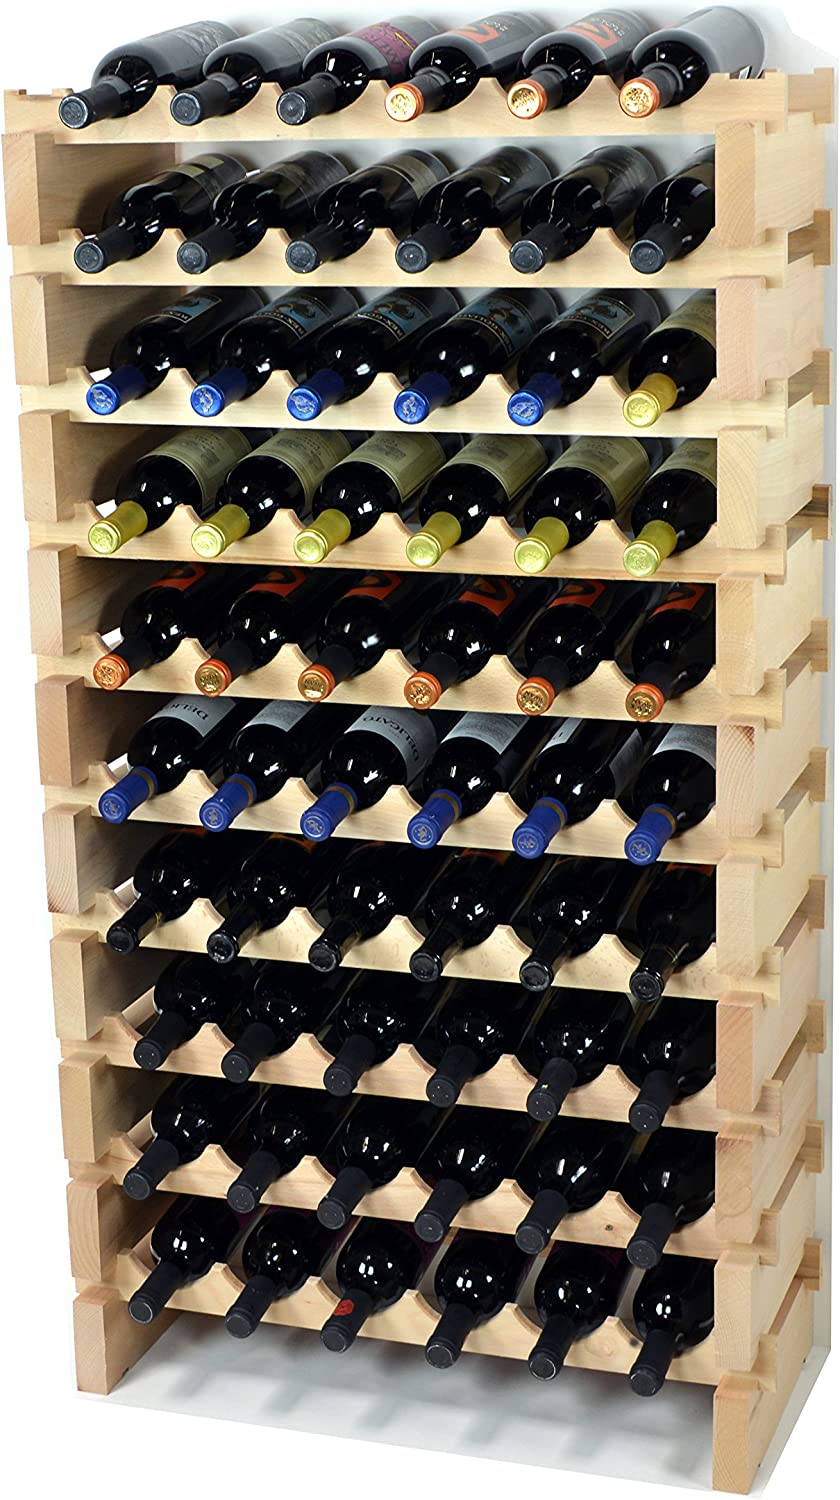 Modular Wine Rack Beechwood 24-72 Bottle Capacity 6 Bottles Across up to 12 Rows Newest Improved Model (60 Bottles - 10 Rows)